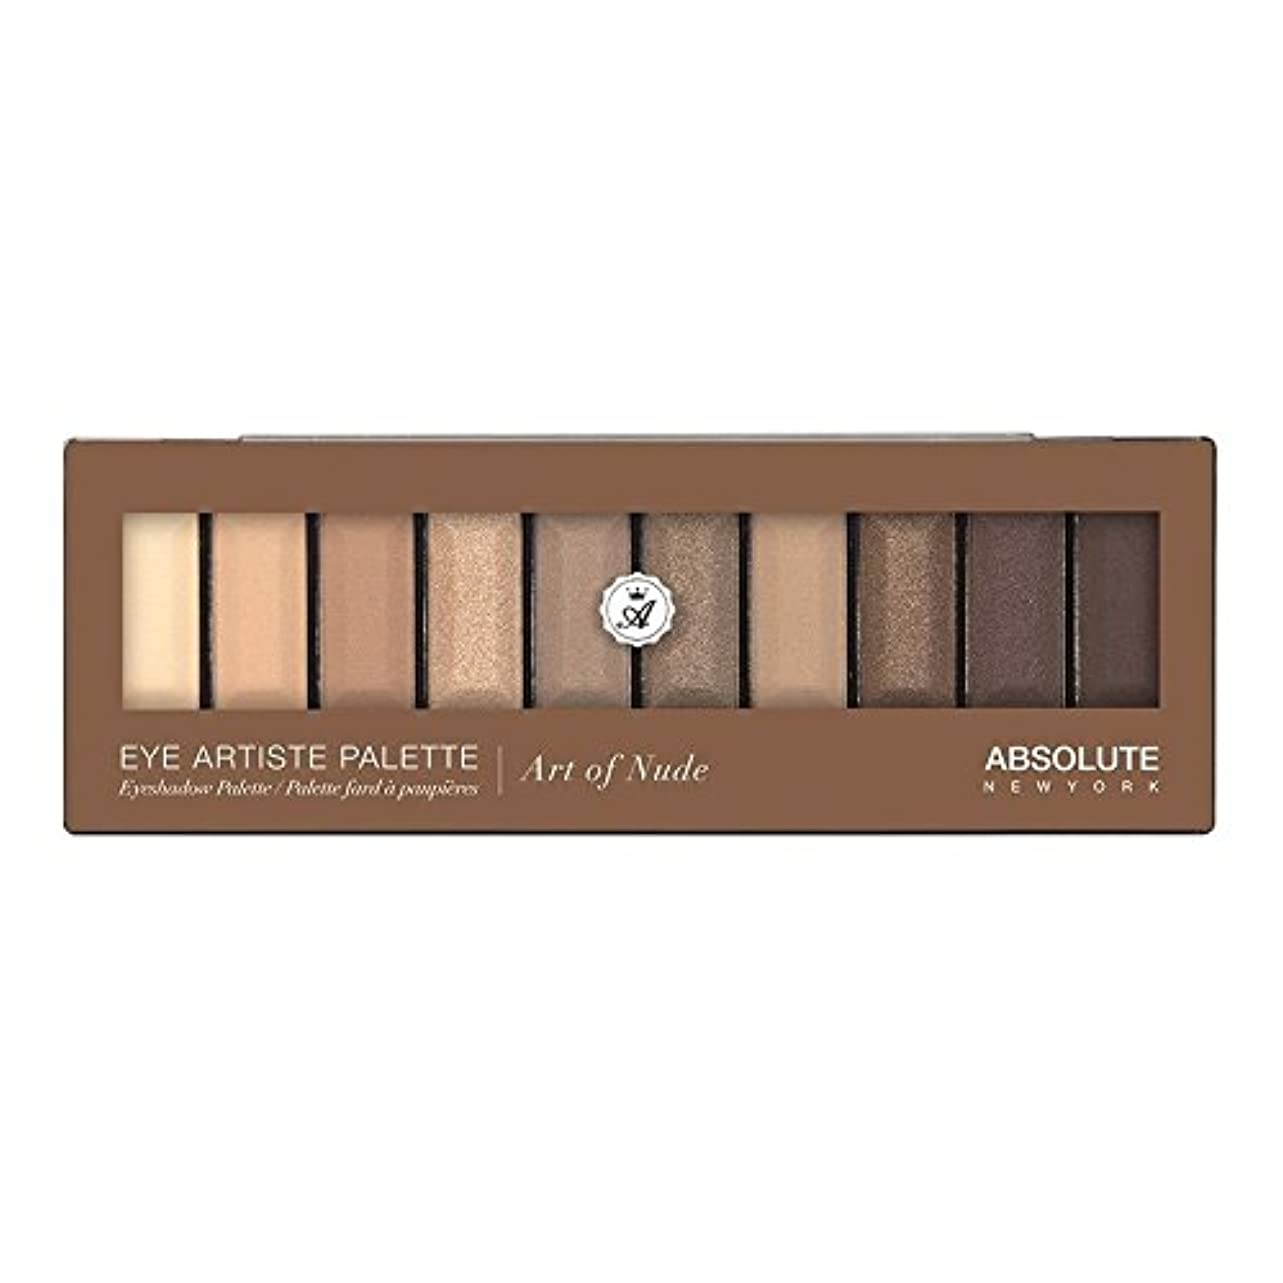 遠い資本メイト(3 Pack) ABSOLUTE Eye Artiste Palette - Art Of Nude (並行輸入品)